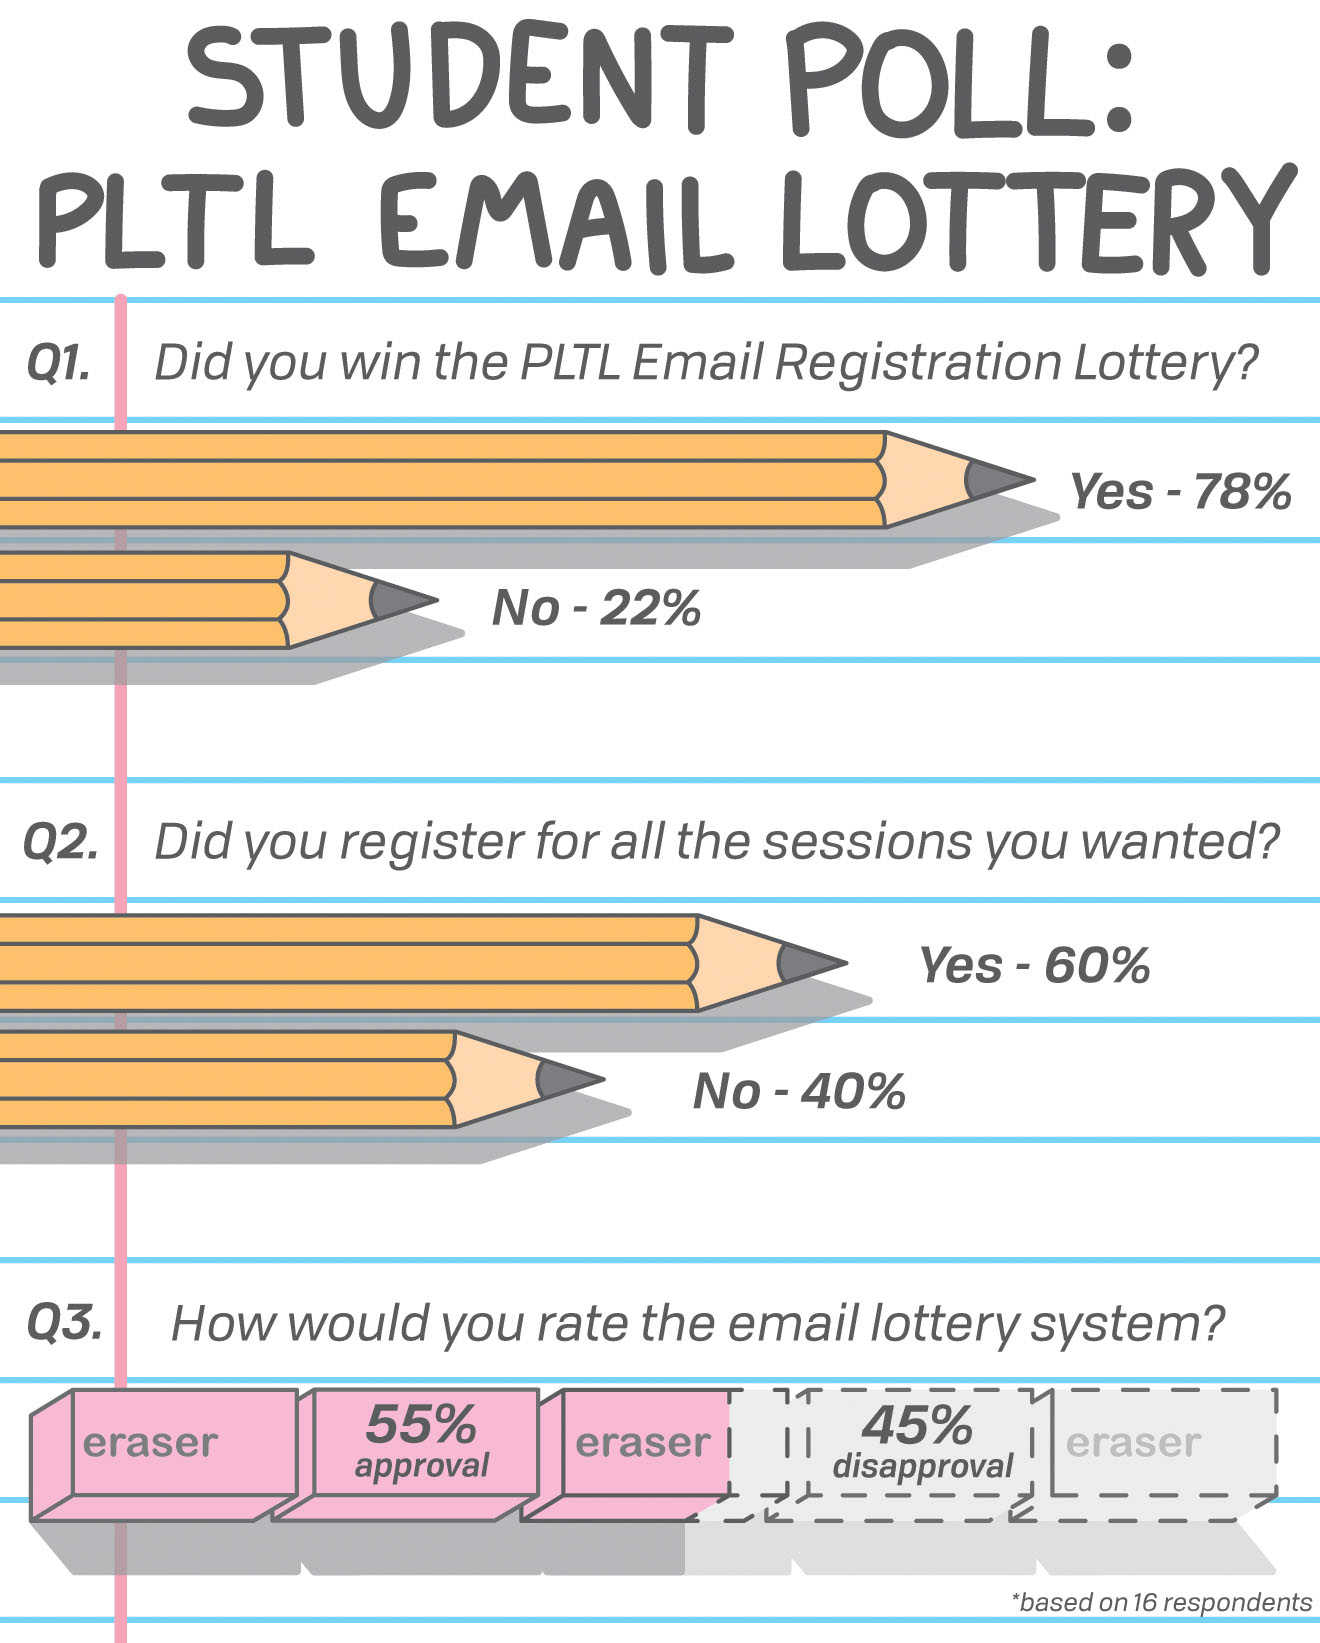 PLTL adopts lottery-based early registration system